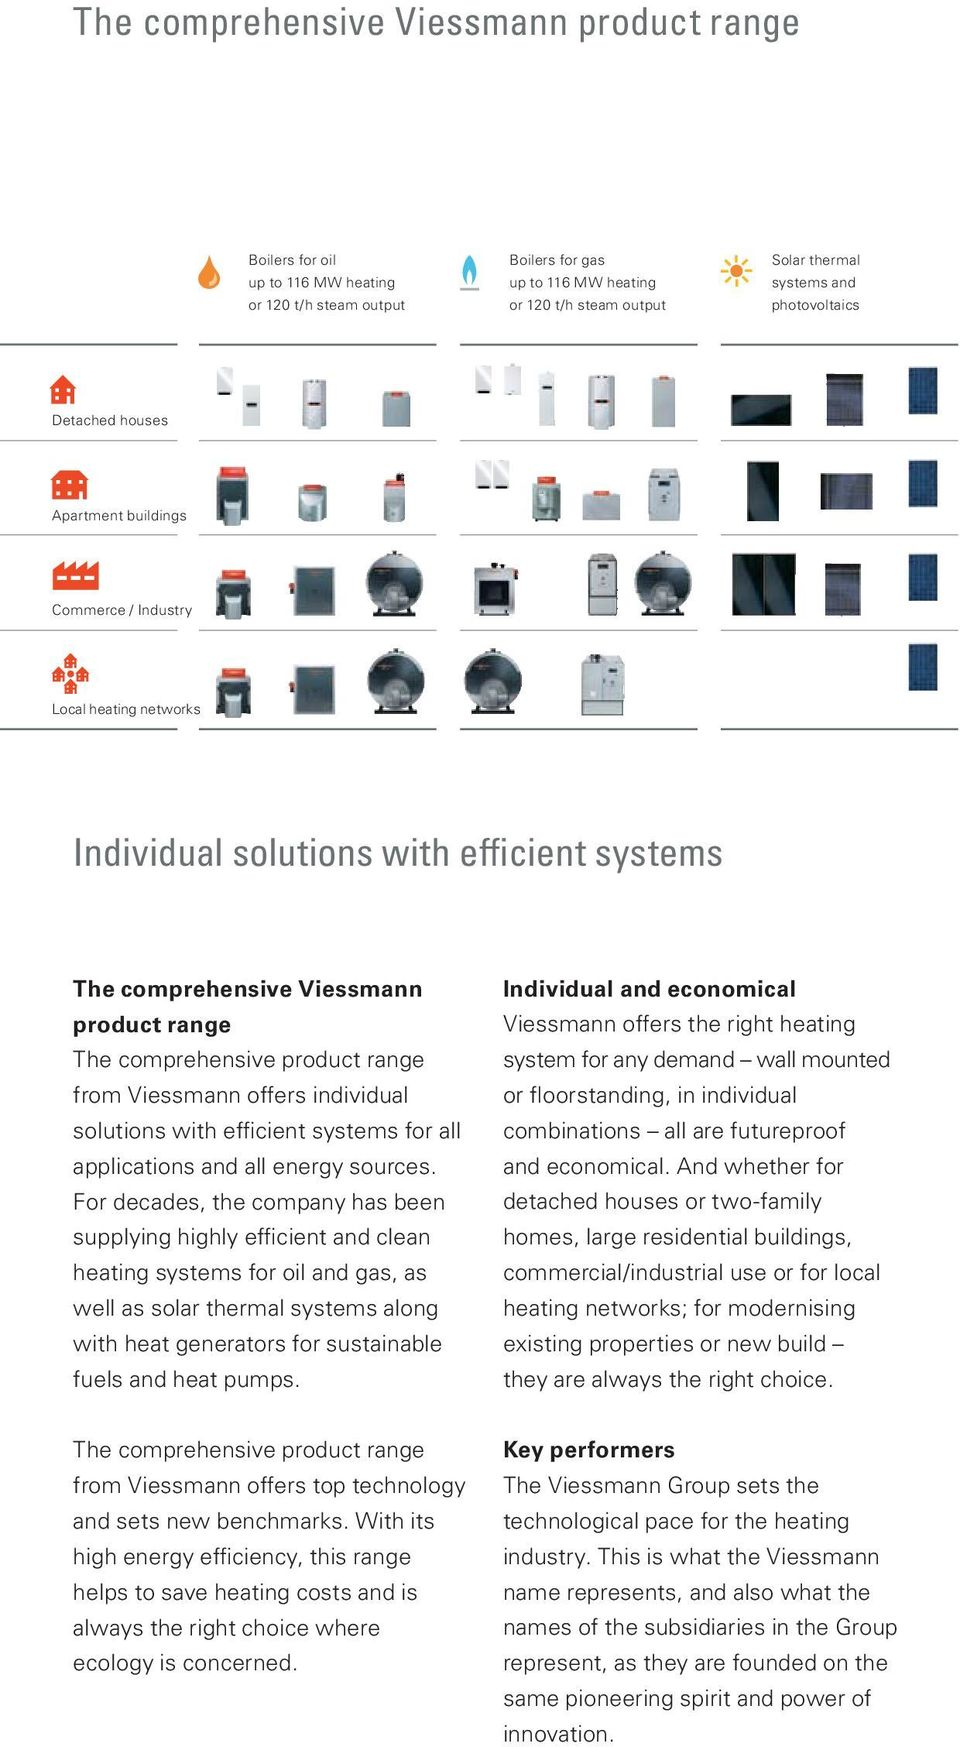 product range from Viessmann offers individual solutions with efficient systems for all applications and all energy sources.